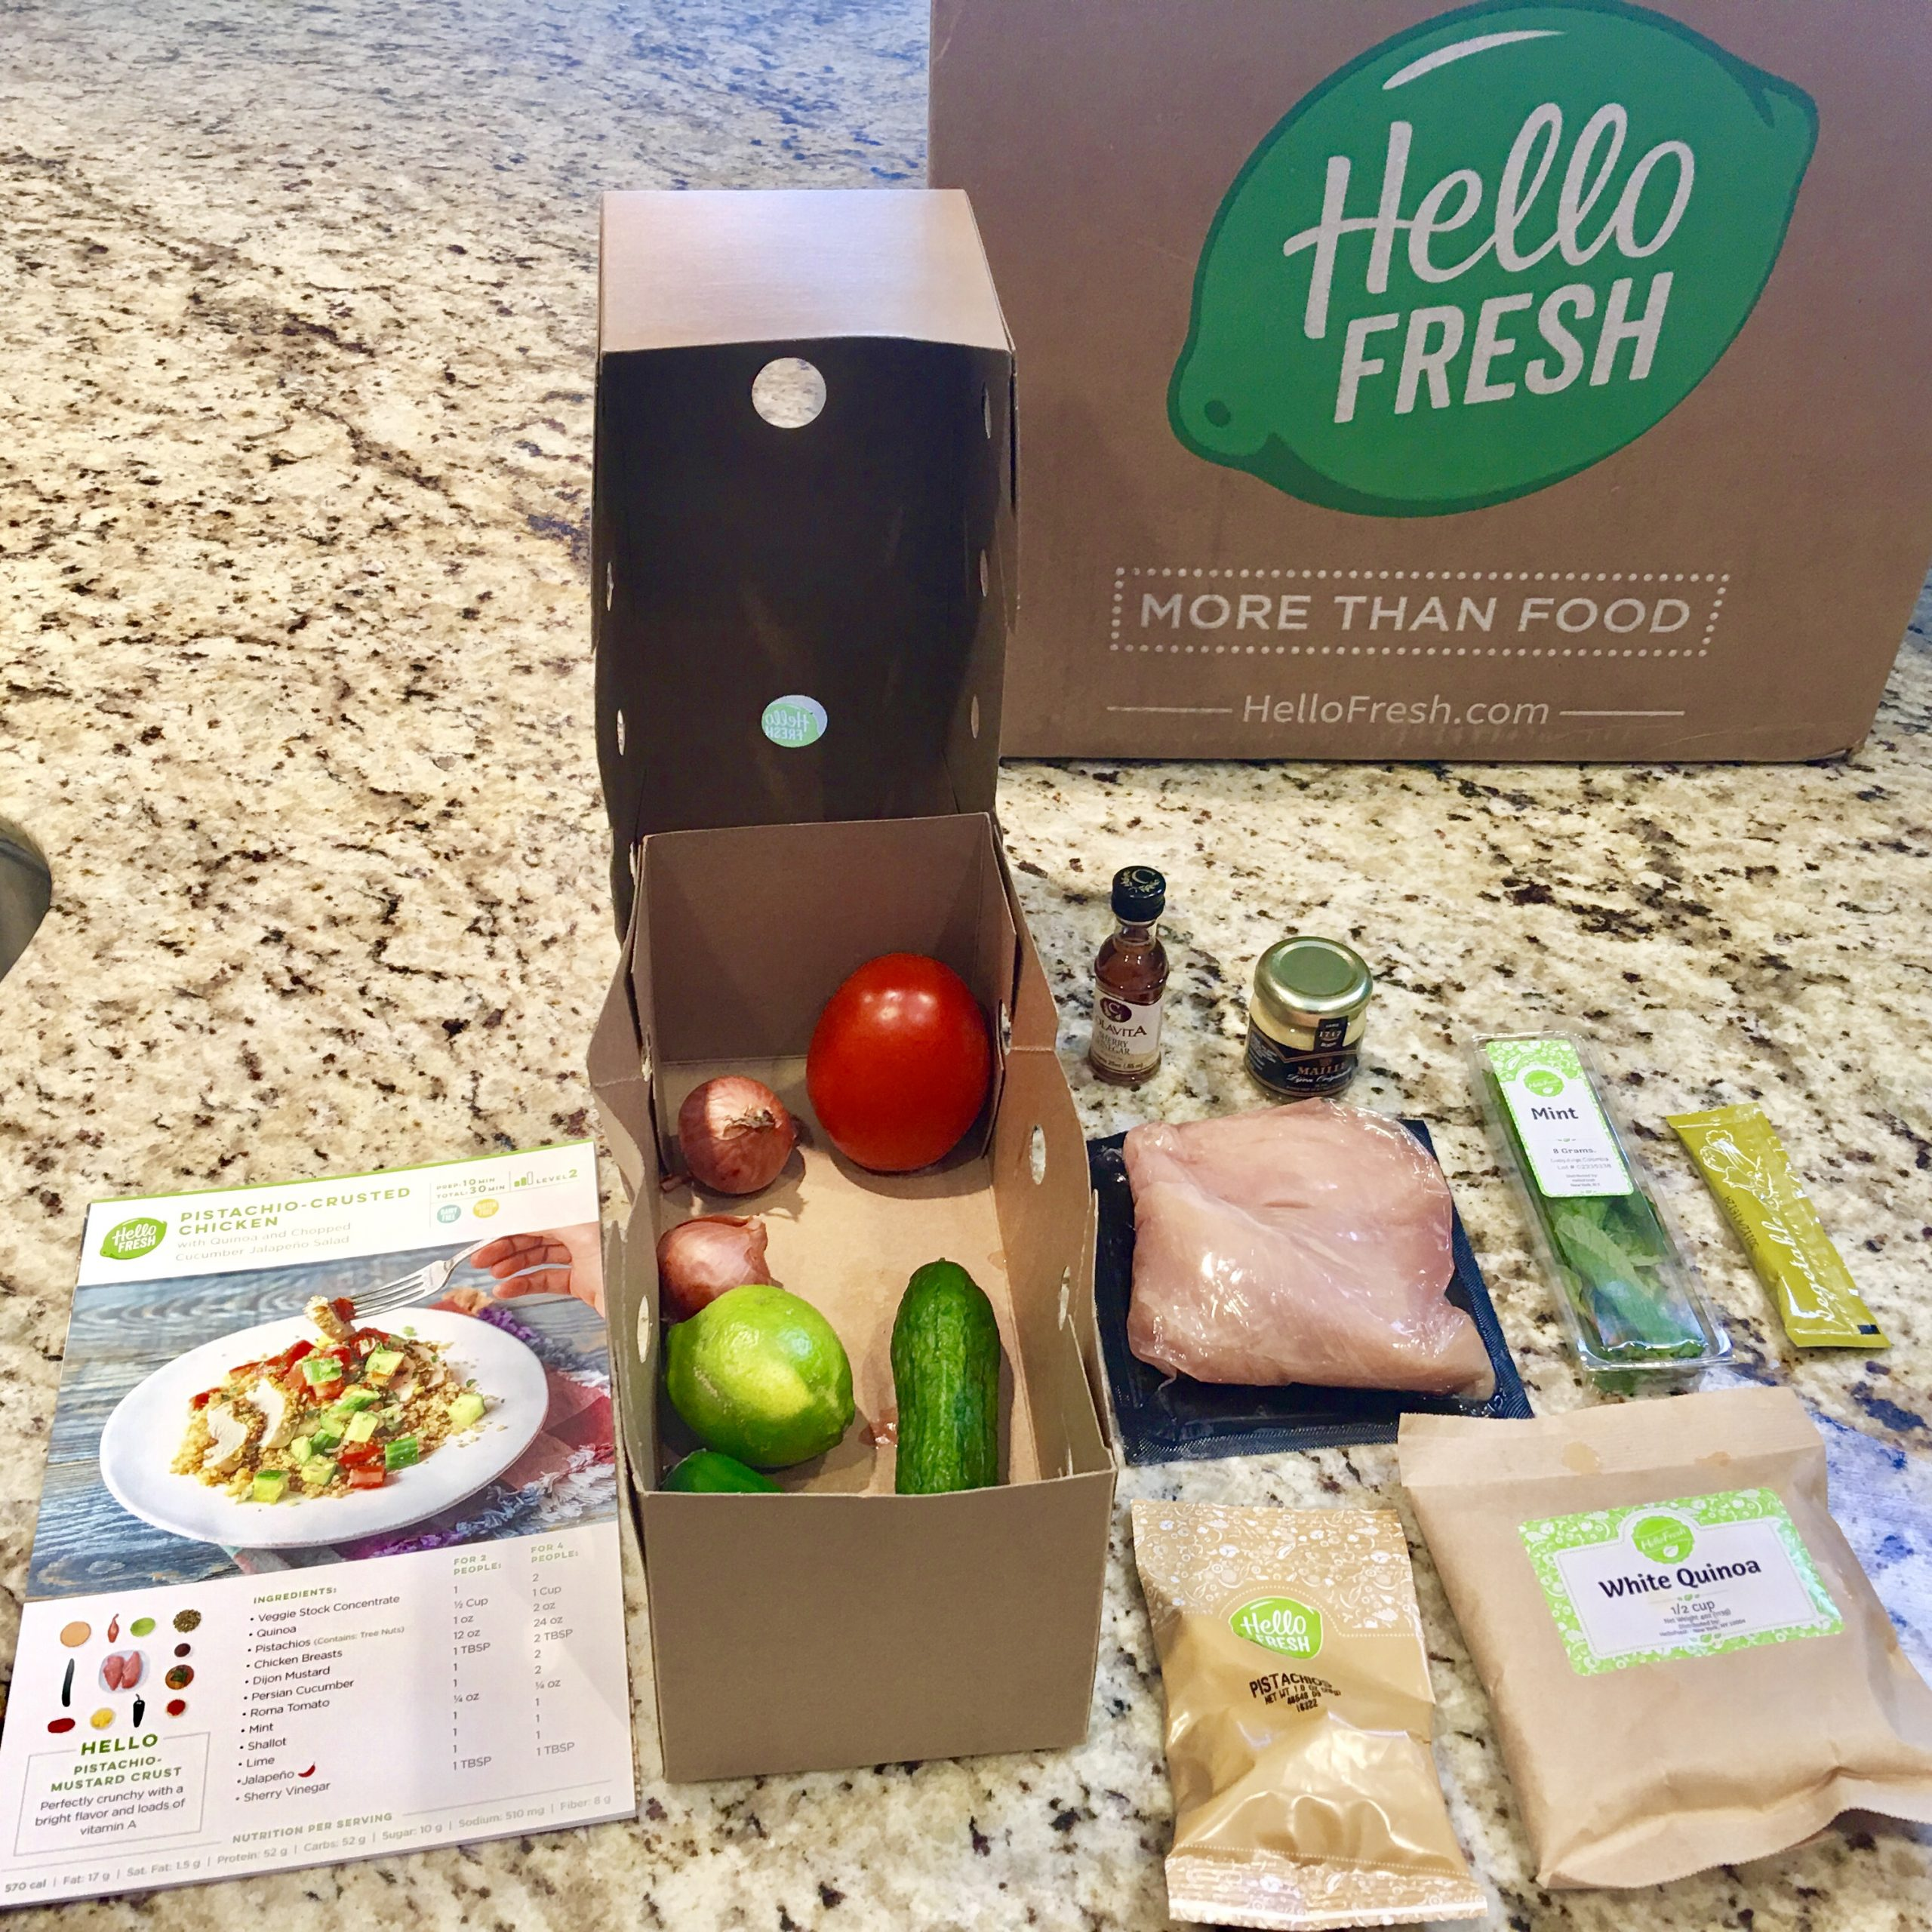 Hellofresh Meal Kit Delivery Service Sales